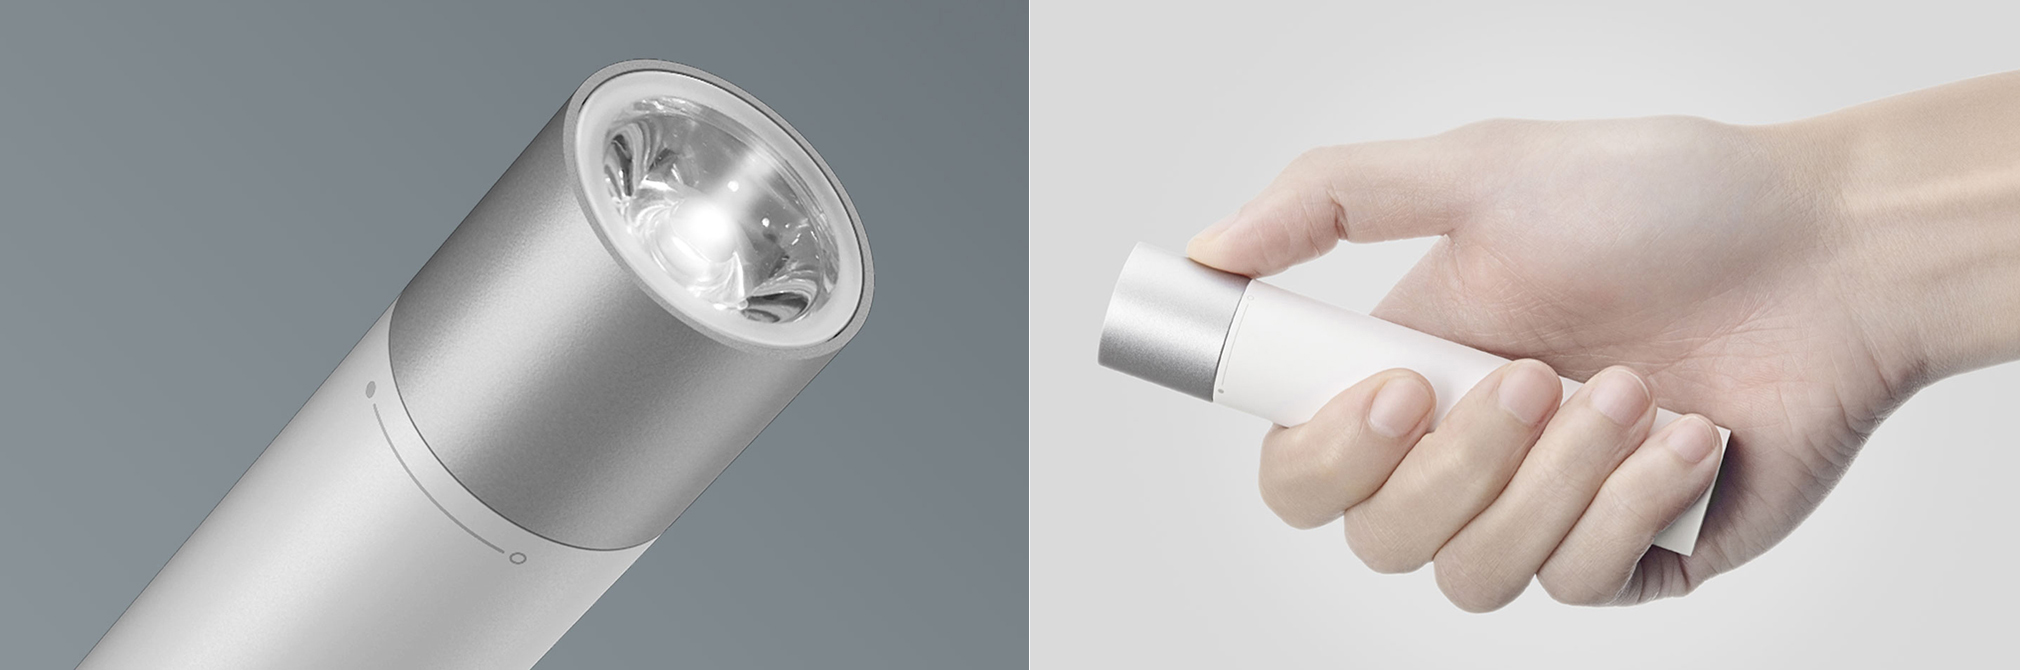 Xiaomi Mi Power Bank 3350 mAh Portable Flashlight